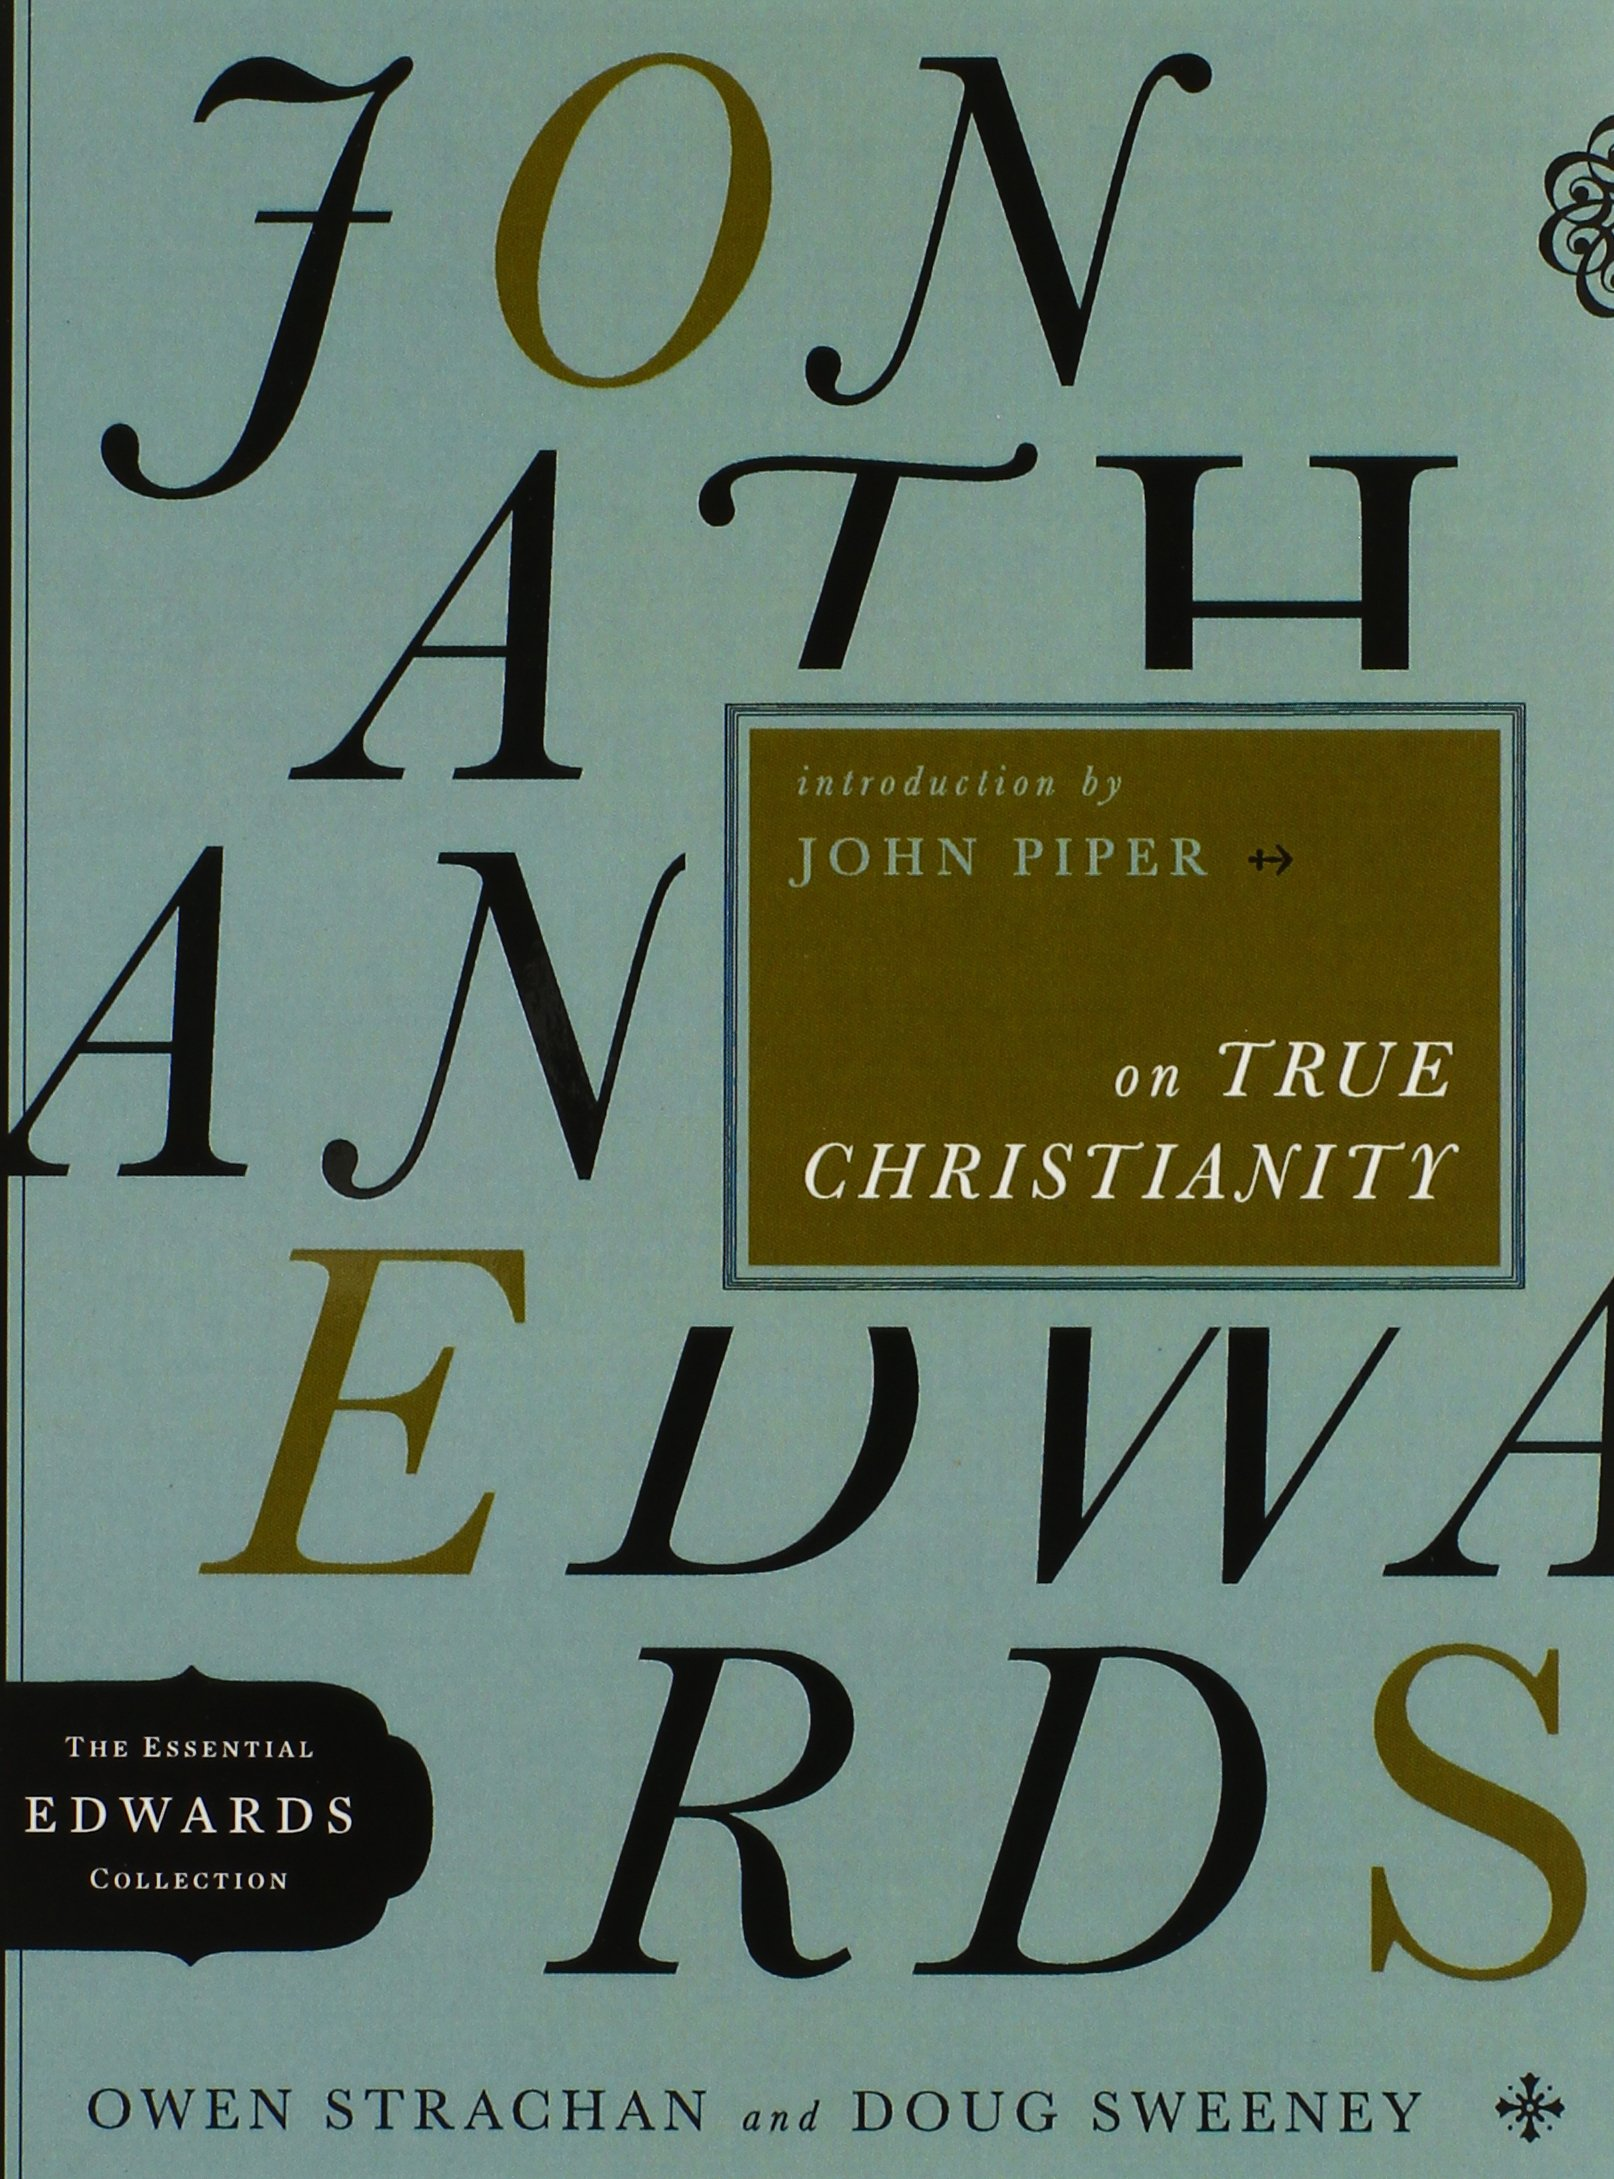 Download Jonathan Edwards on True Christianity (The Essential Edwards Collection) ebook